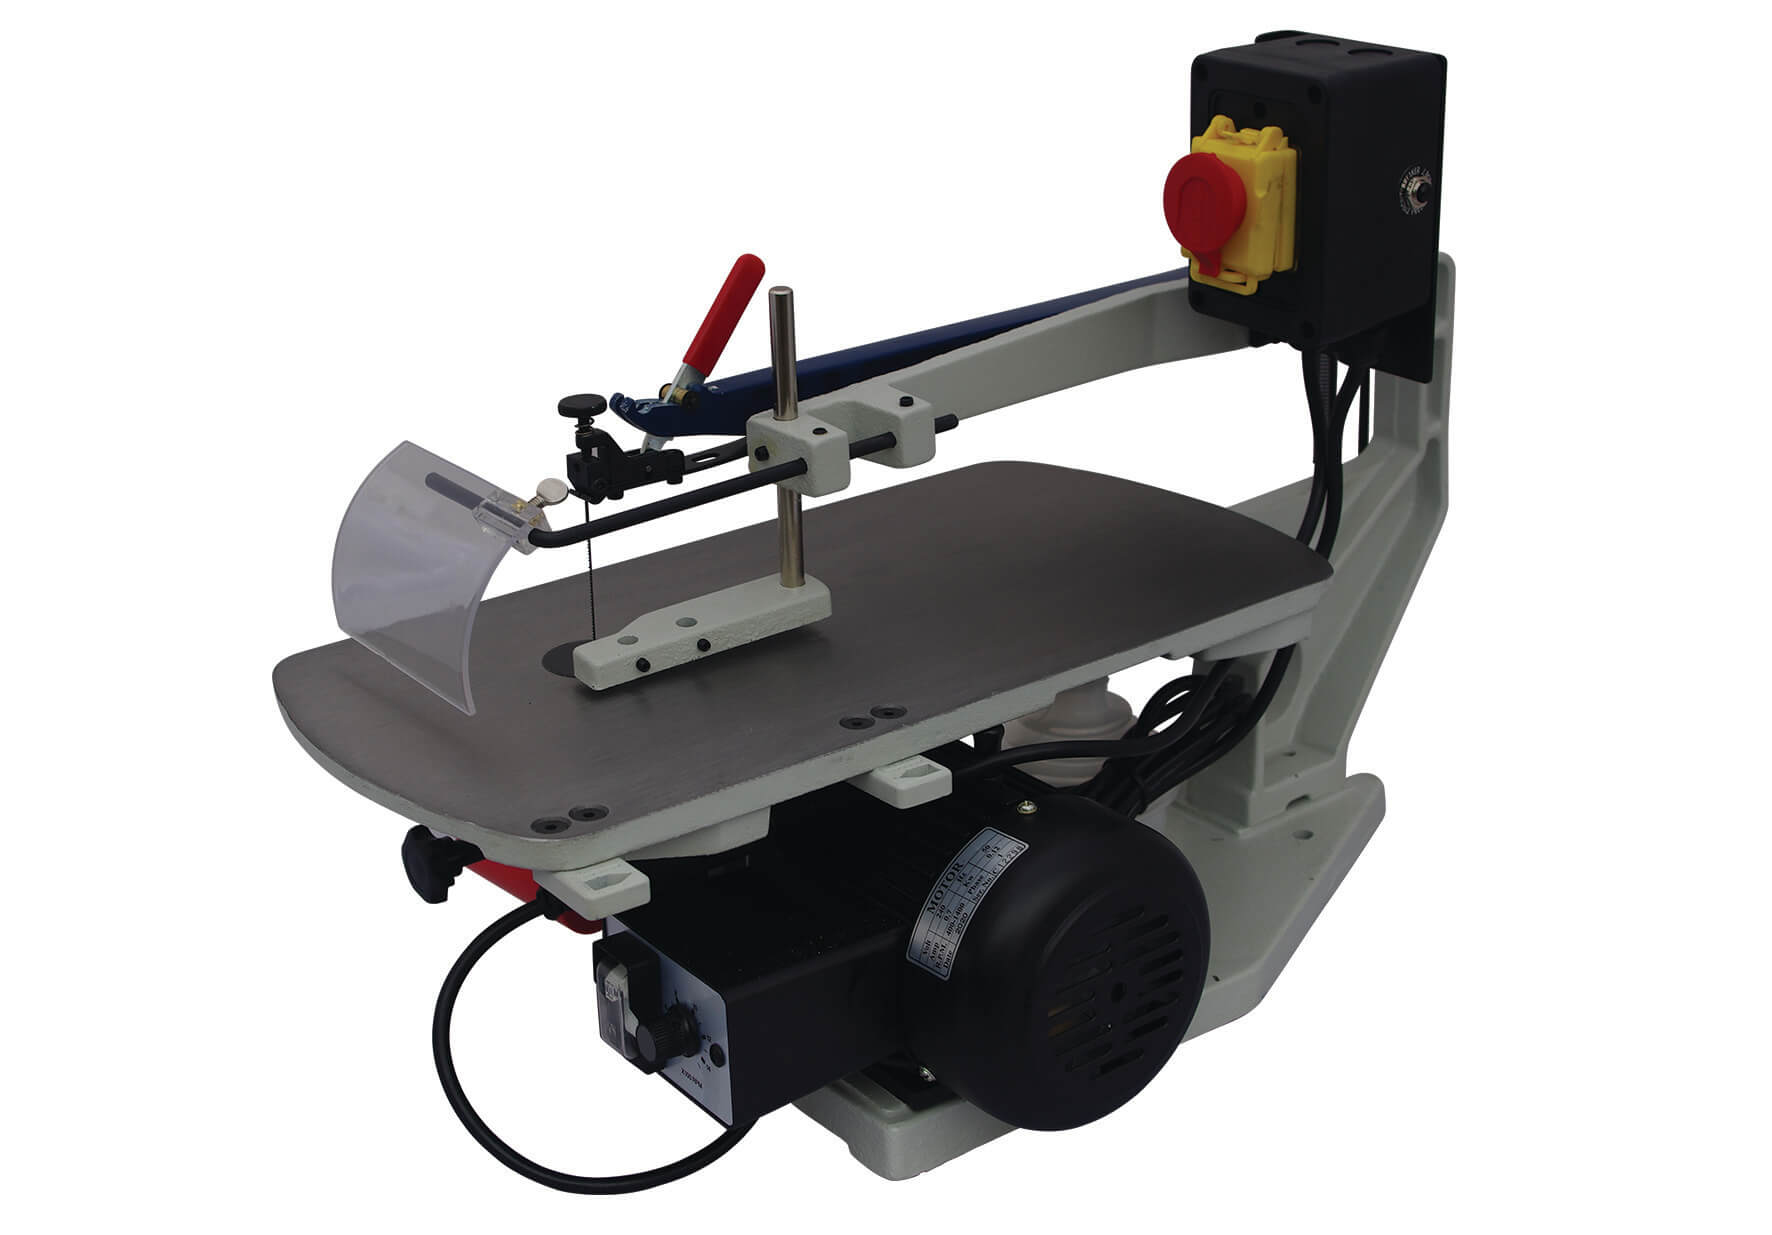 Berghmann Scroll Saw - Education version